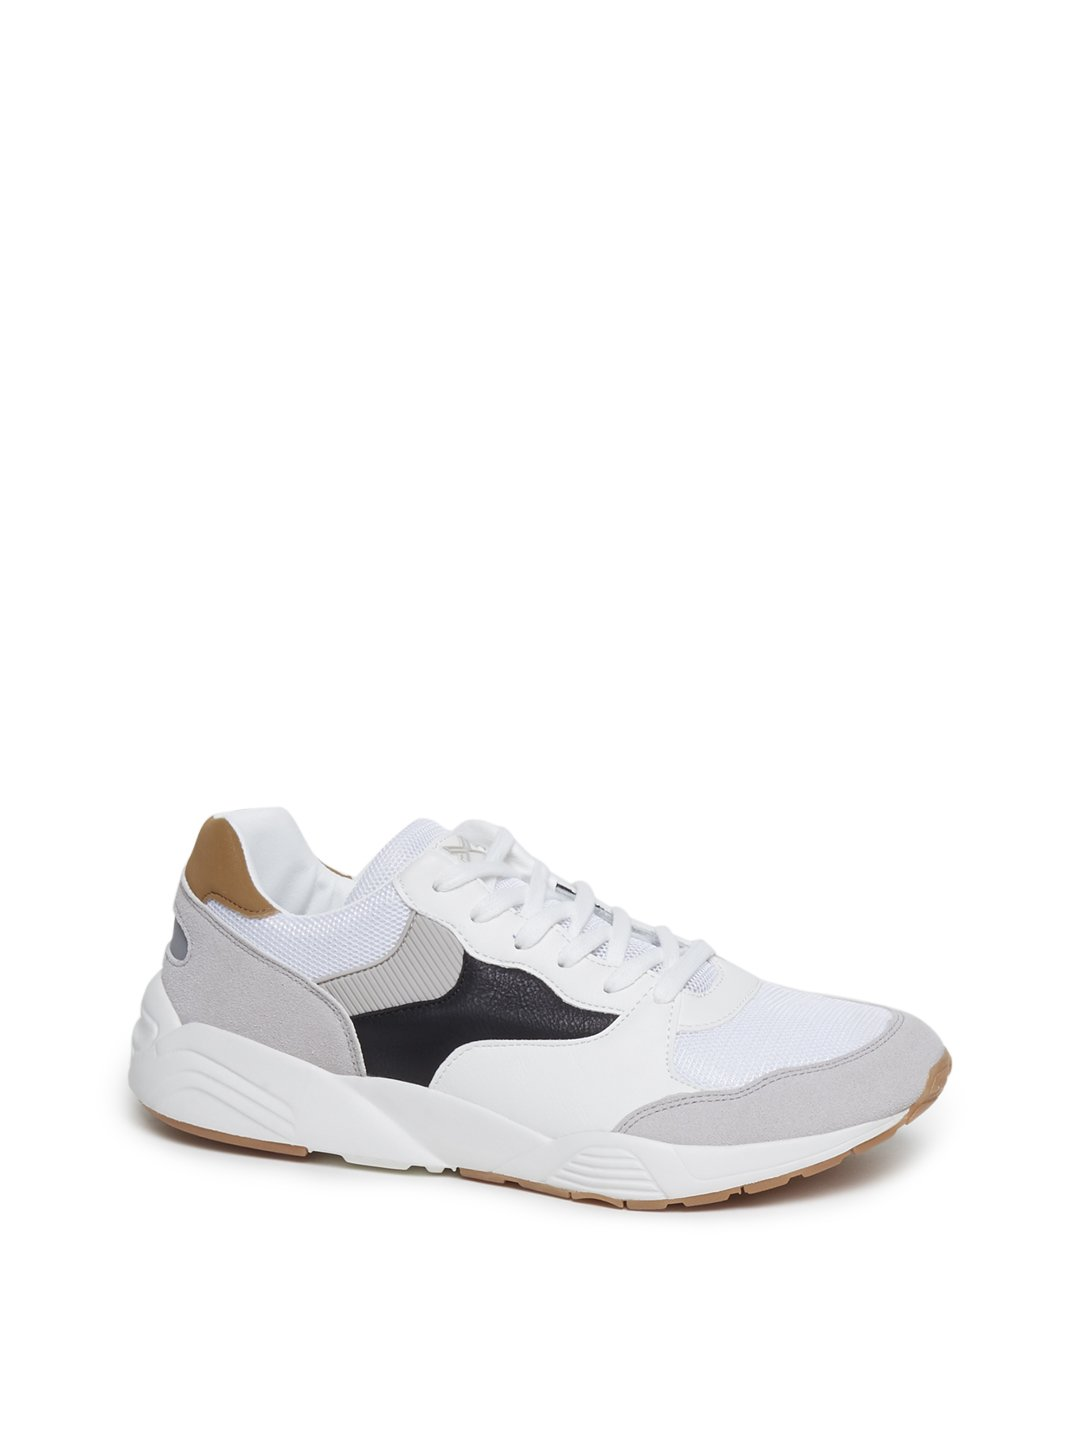 Westside White Faux-Leather Sneakers